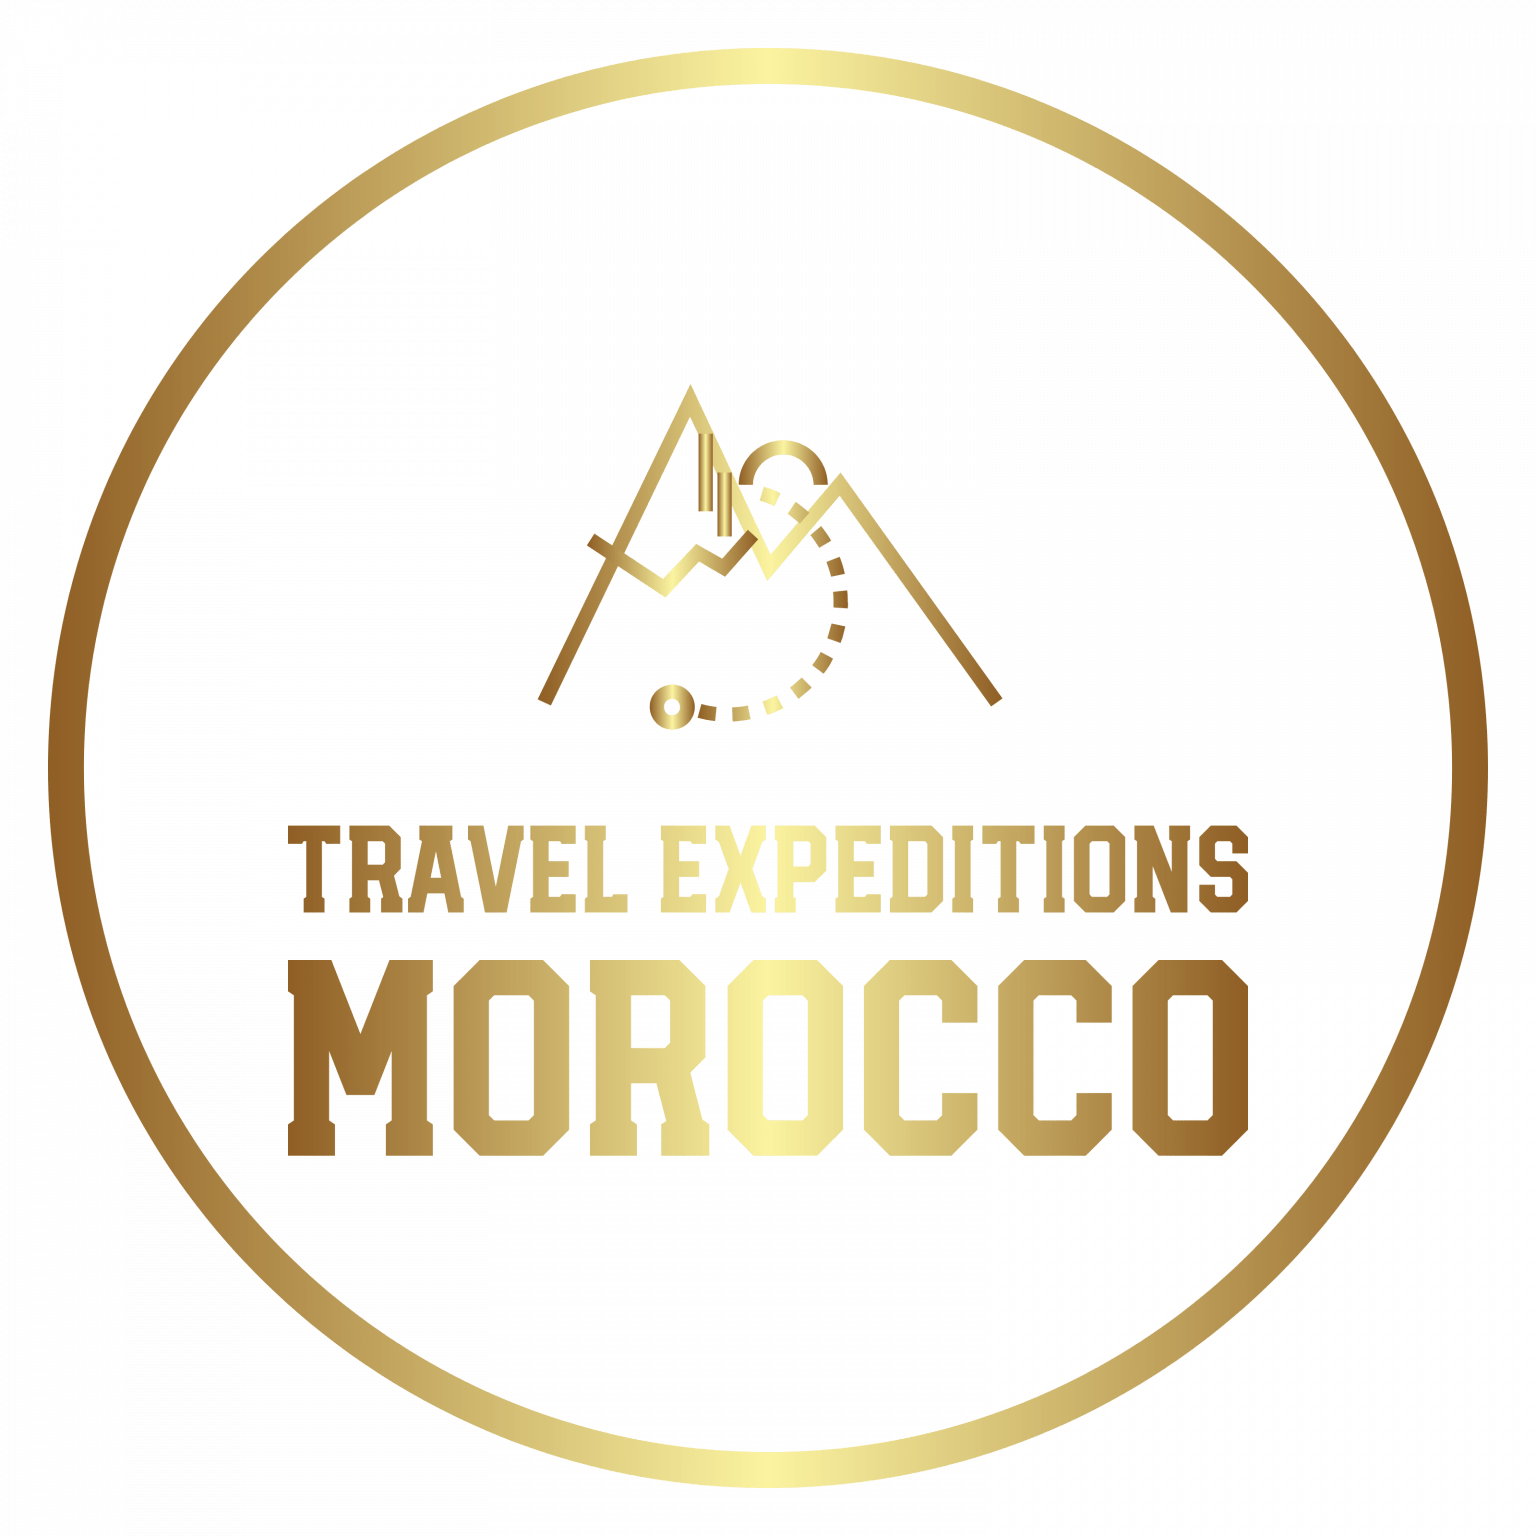 Travel Expeditions Morocco